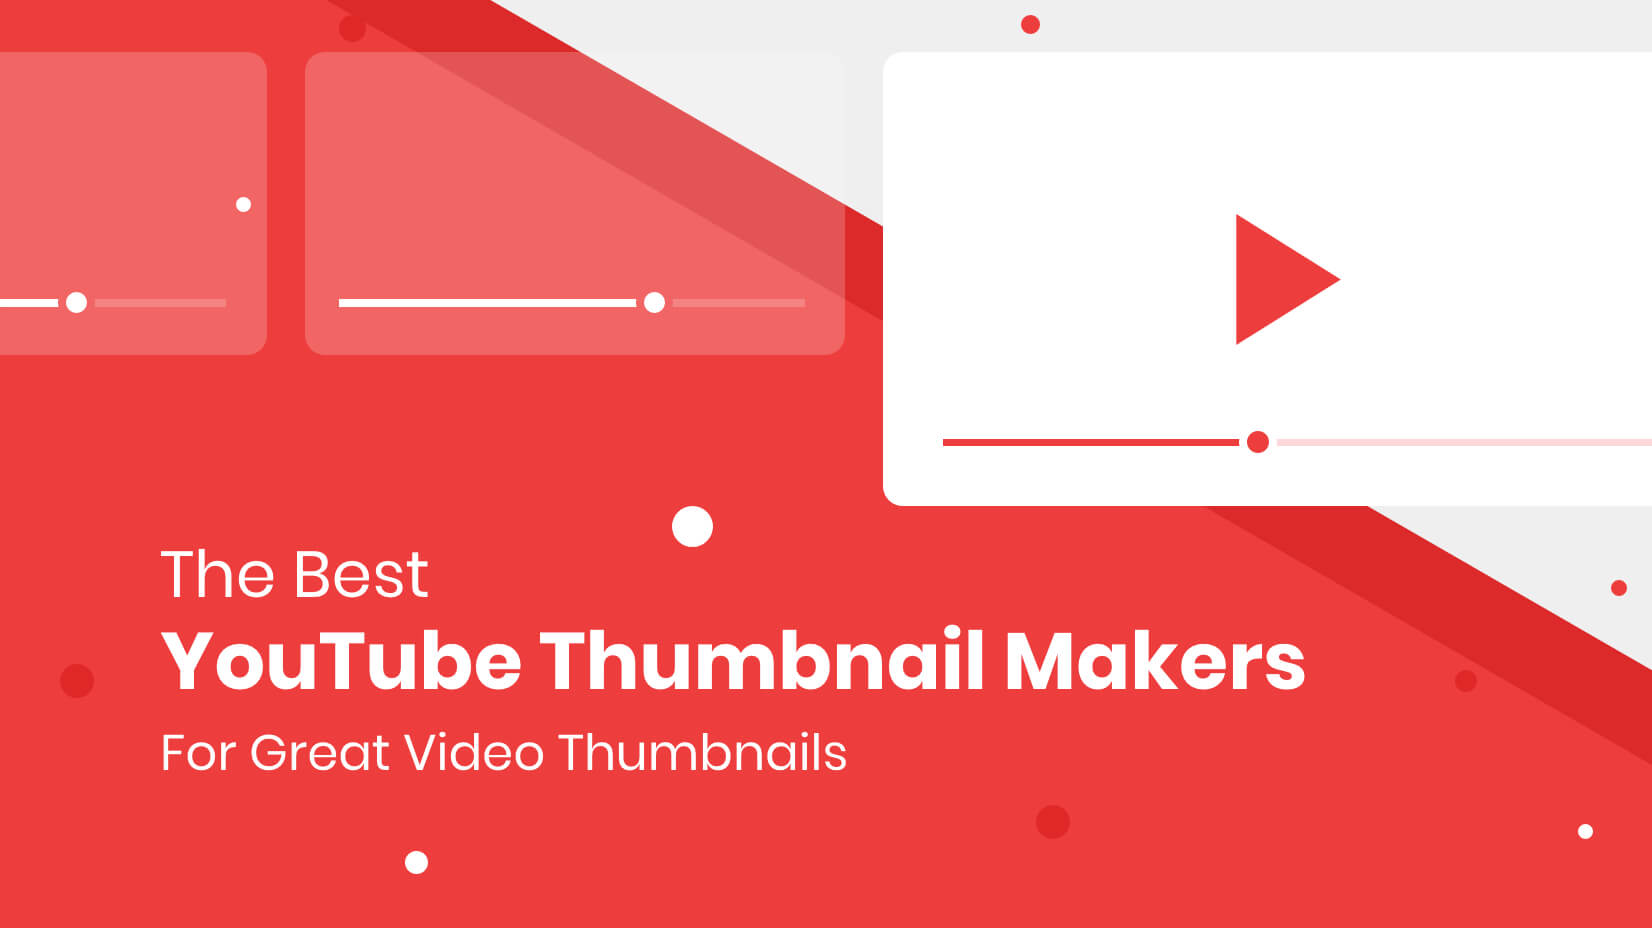 The Best YouTube Thumbnail Makers